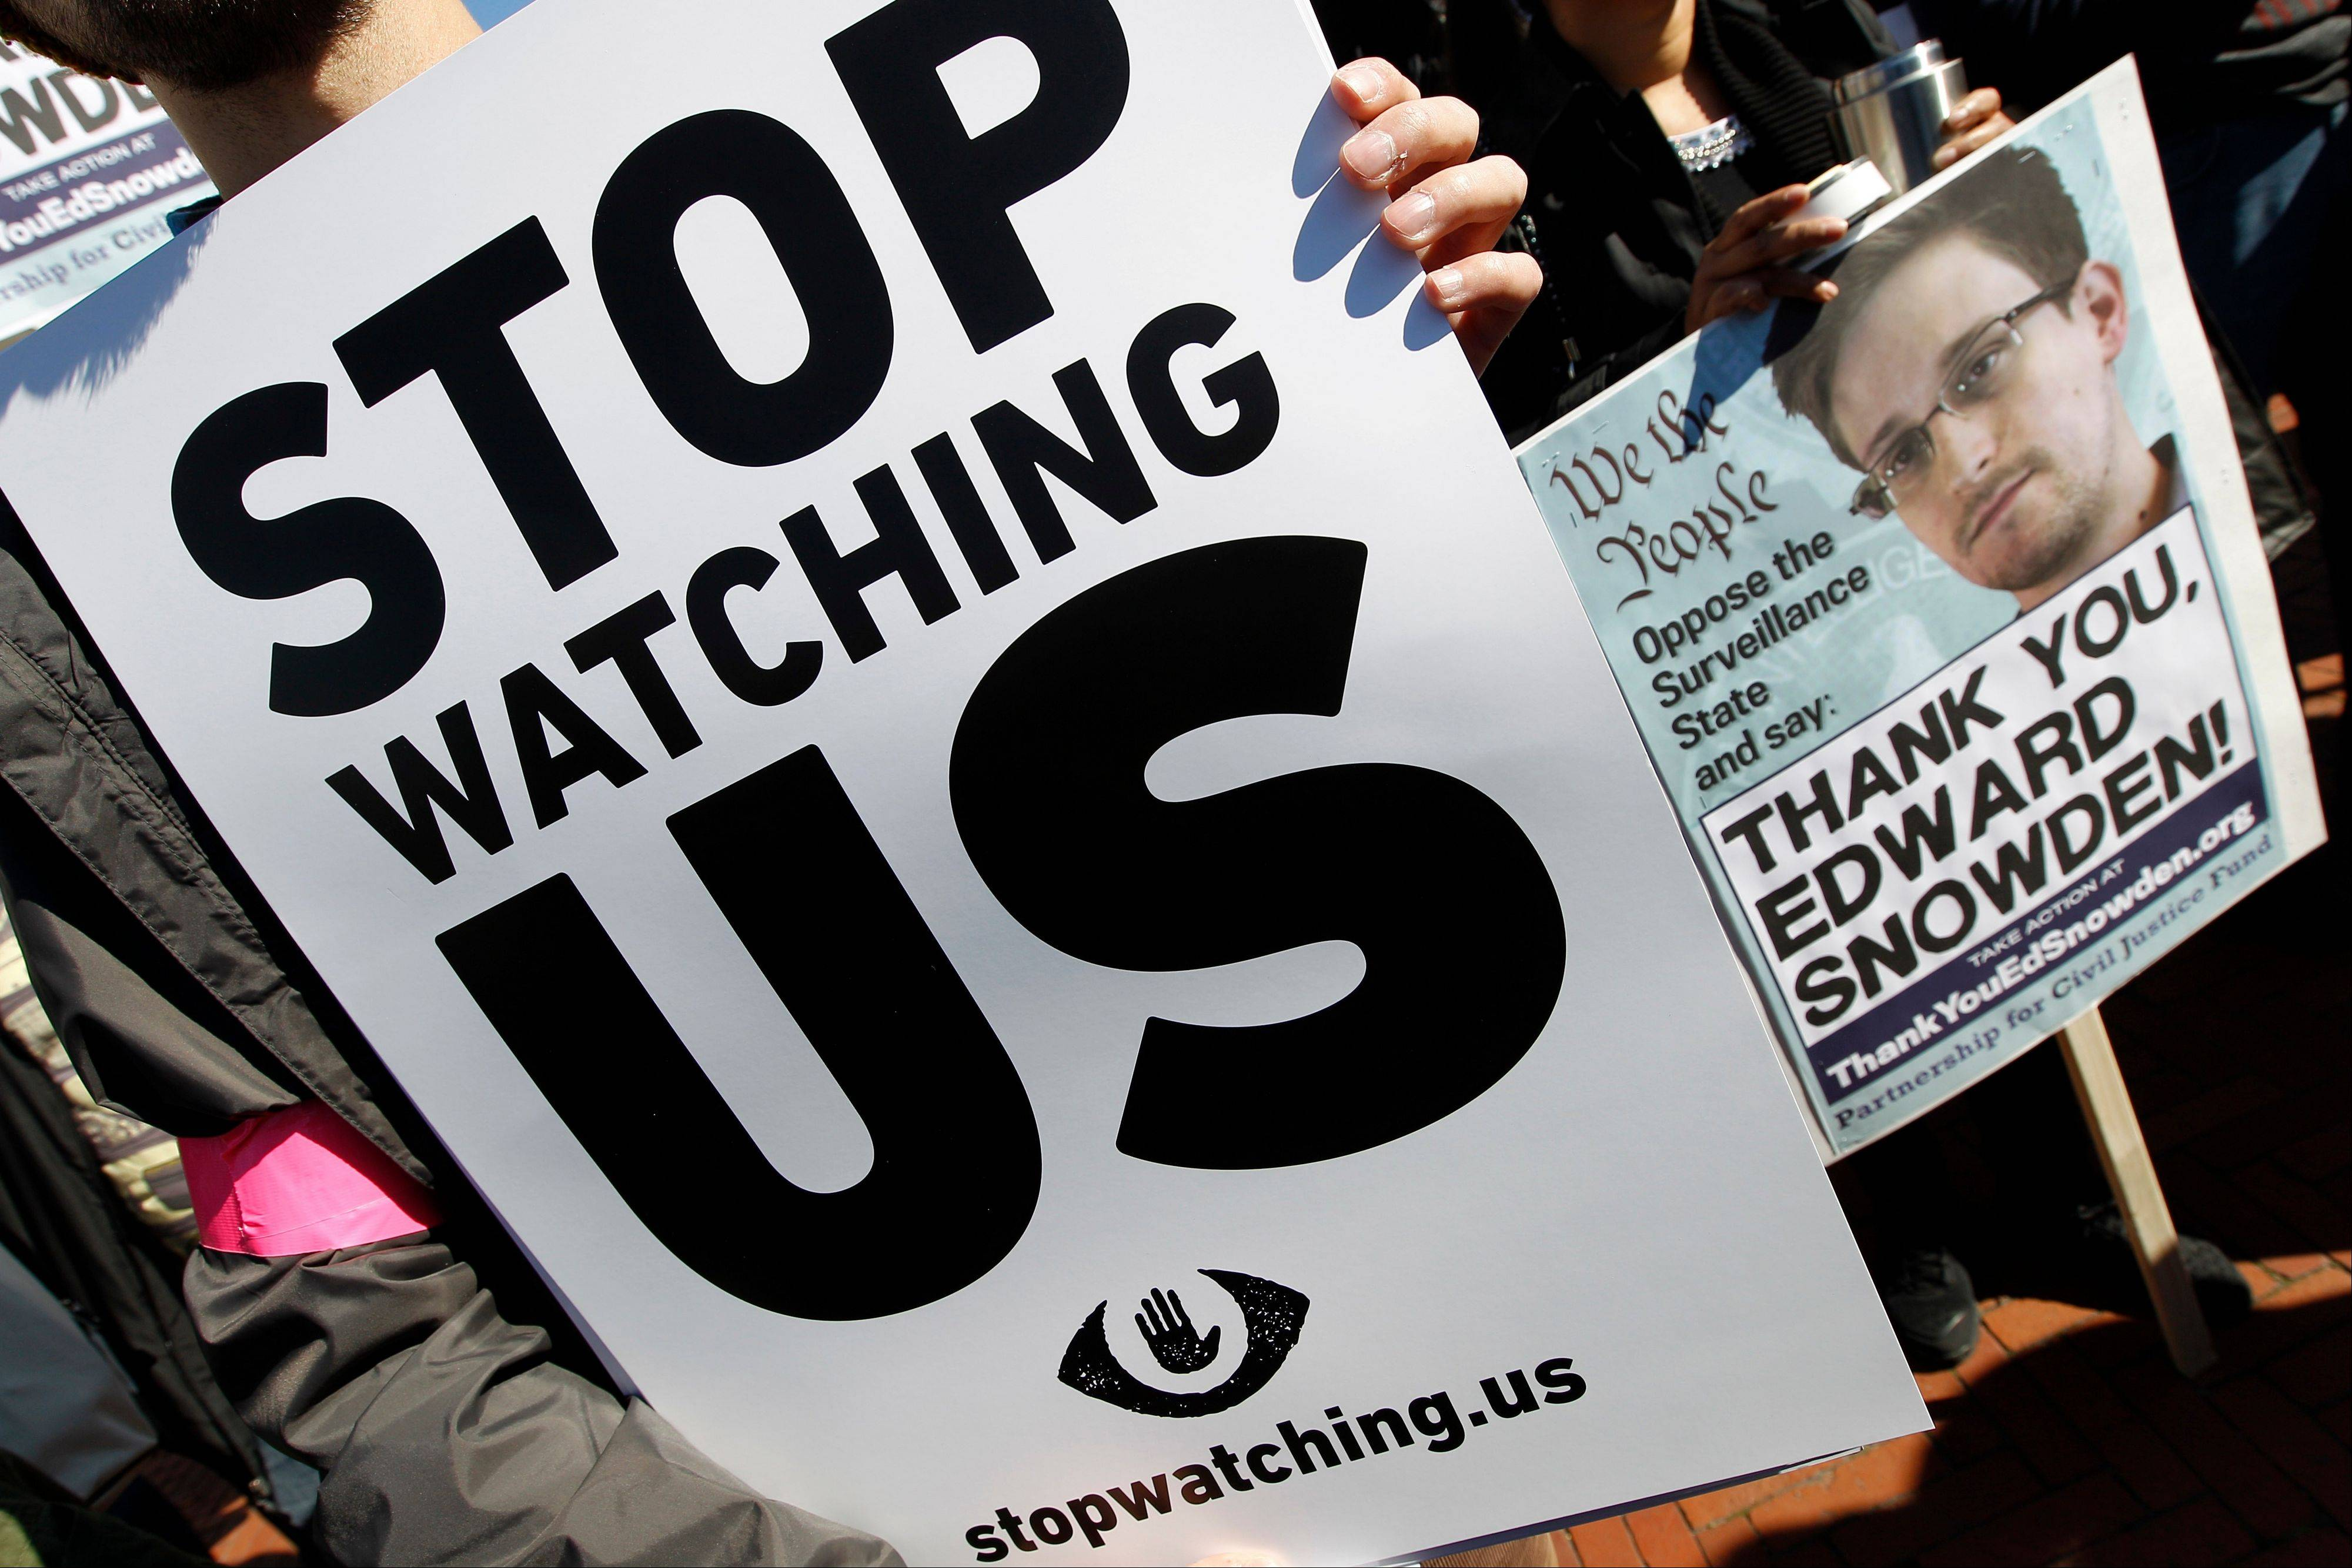 Demonstrators protest outside of the U.S. Capitol in Washington during a rally to demand that the U.S. Congress investigate the National Security Agency�s mass surveillance programs Saturday, Oct. 26, 2013.